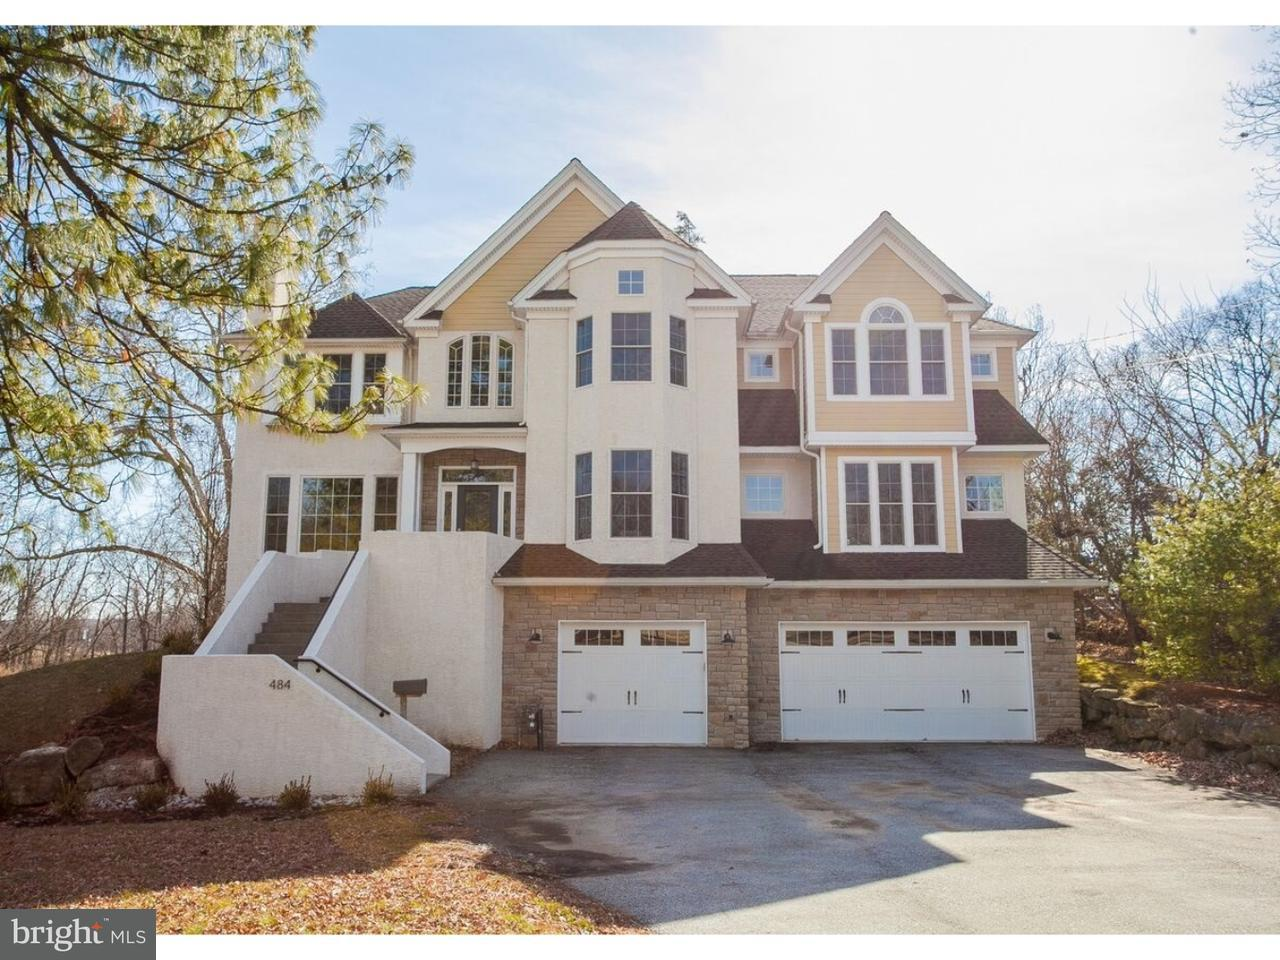 Single Family Home for Sale at 484 KEEBLER Road King Of Prussia, Pennsylvania 19406 United States